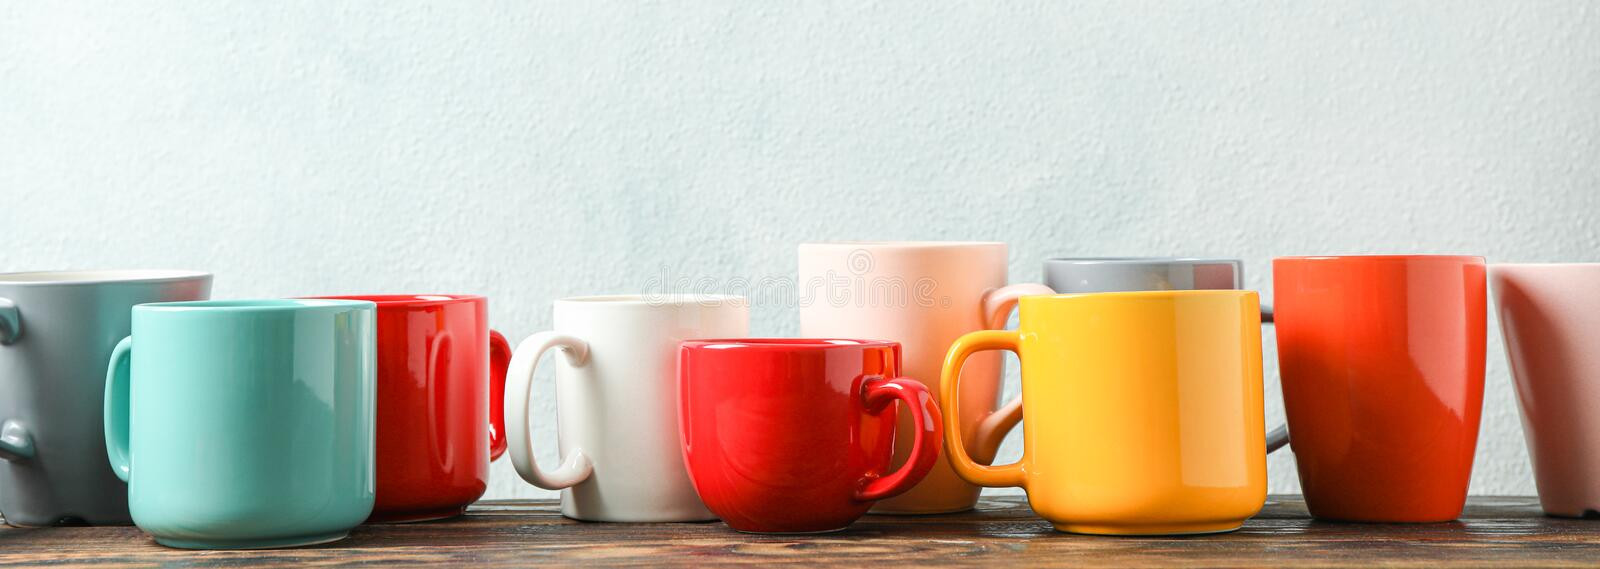 Multicolored cups on wooden table against light background stock images